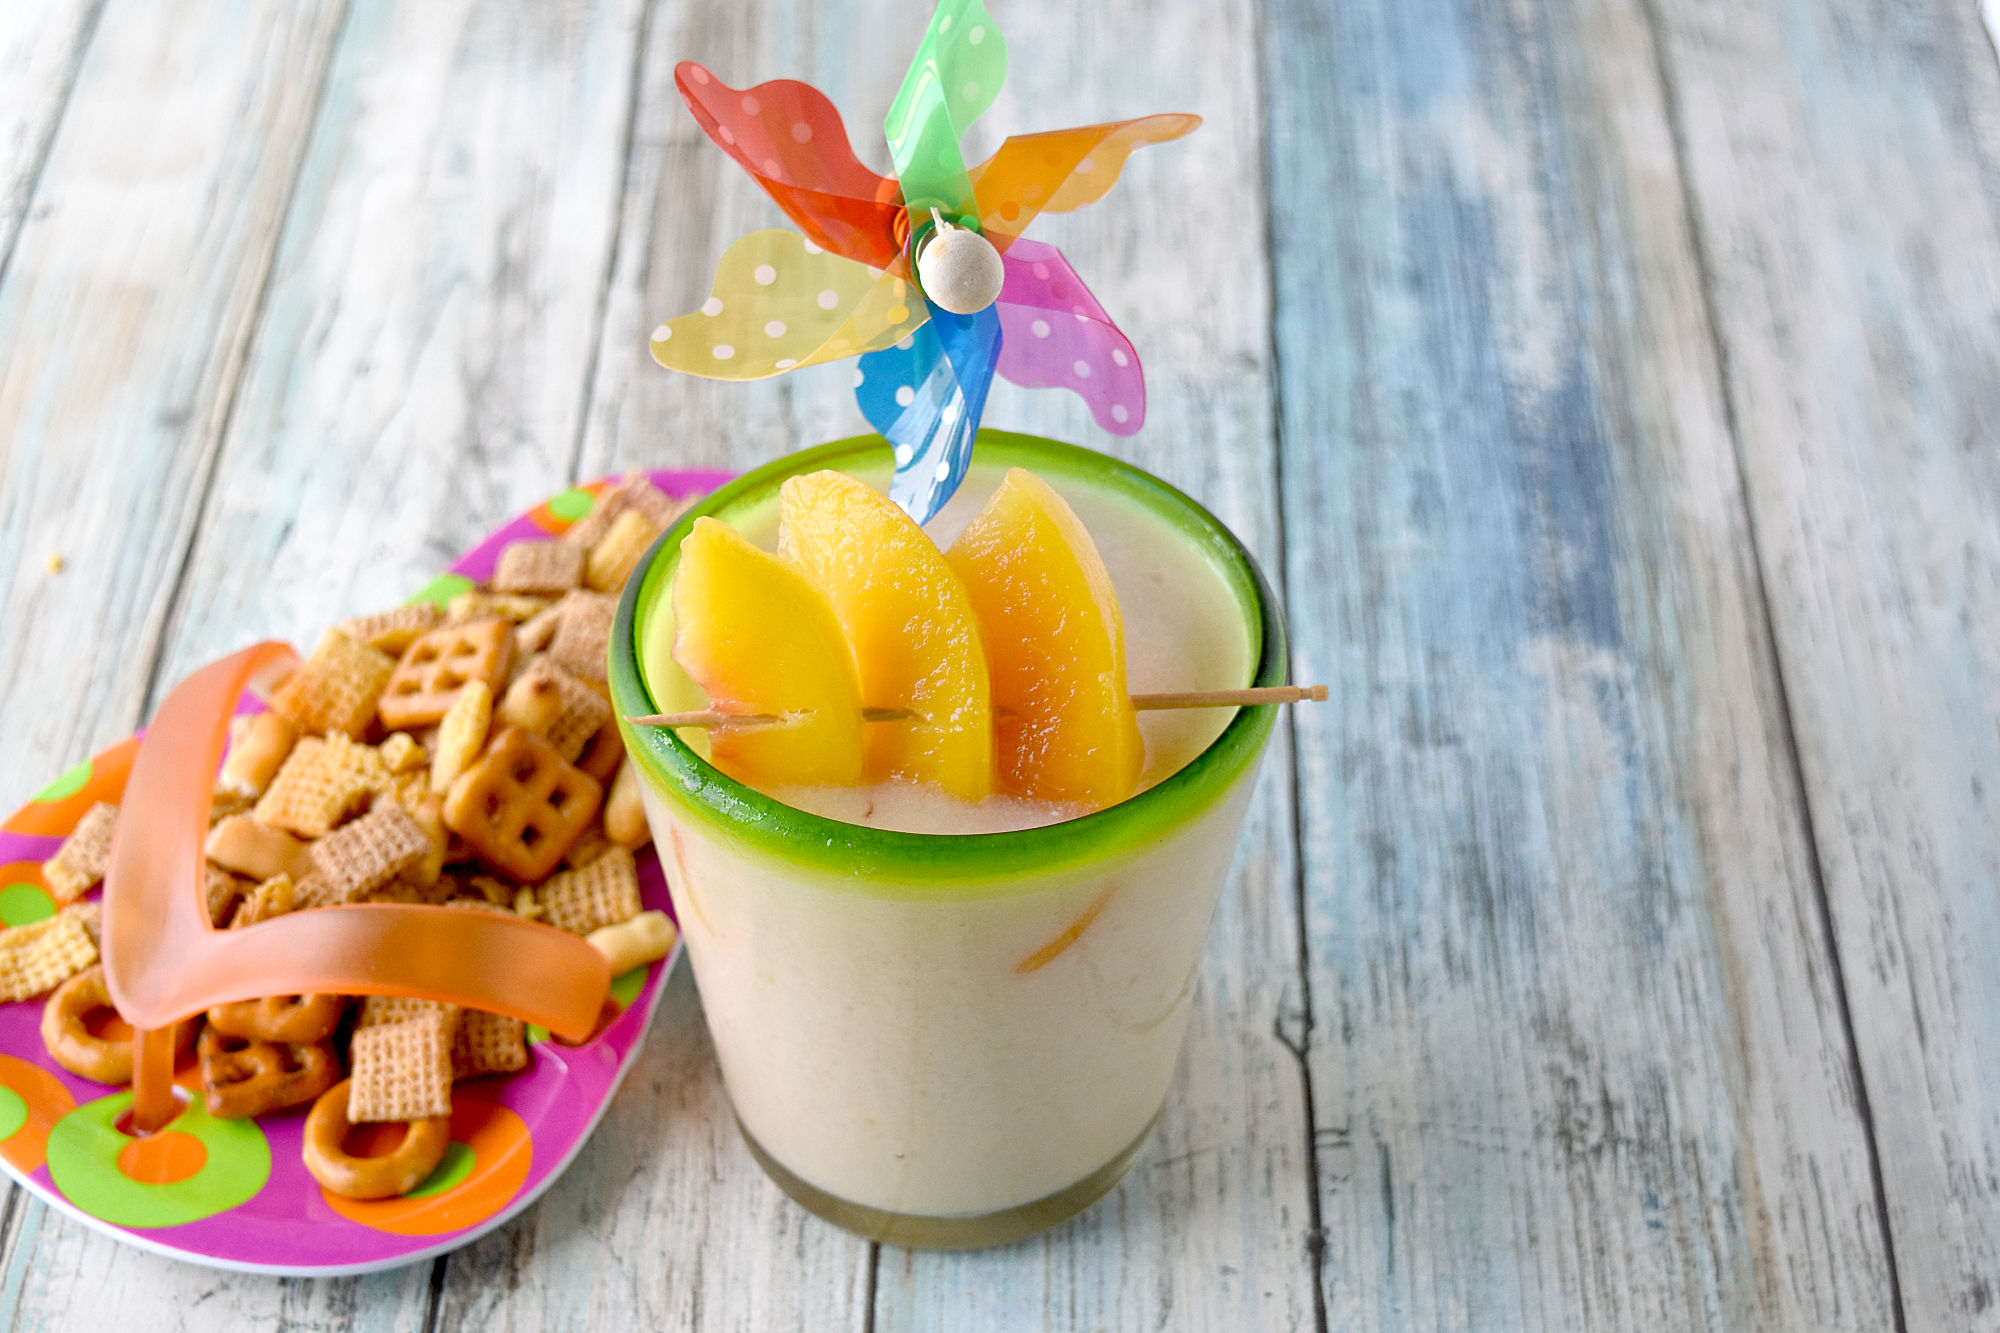 Peachy Colada has simple ingredients and tastes perfectly delicious. Made with frozen peaches, 2 types of rum, and crema of coconut, it's a refreshing summer colada you'll enjoy. #OurFamilyTable